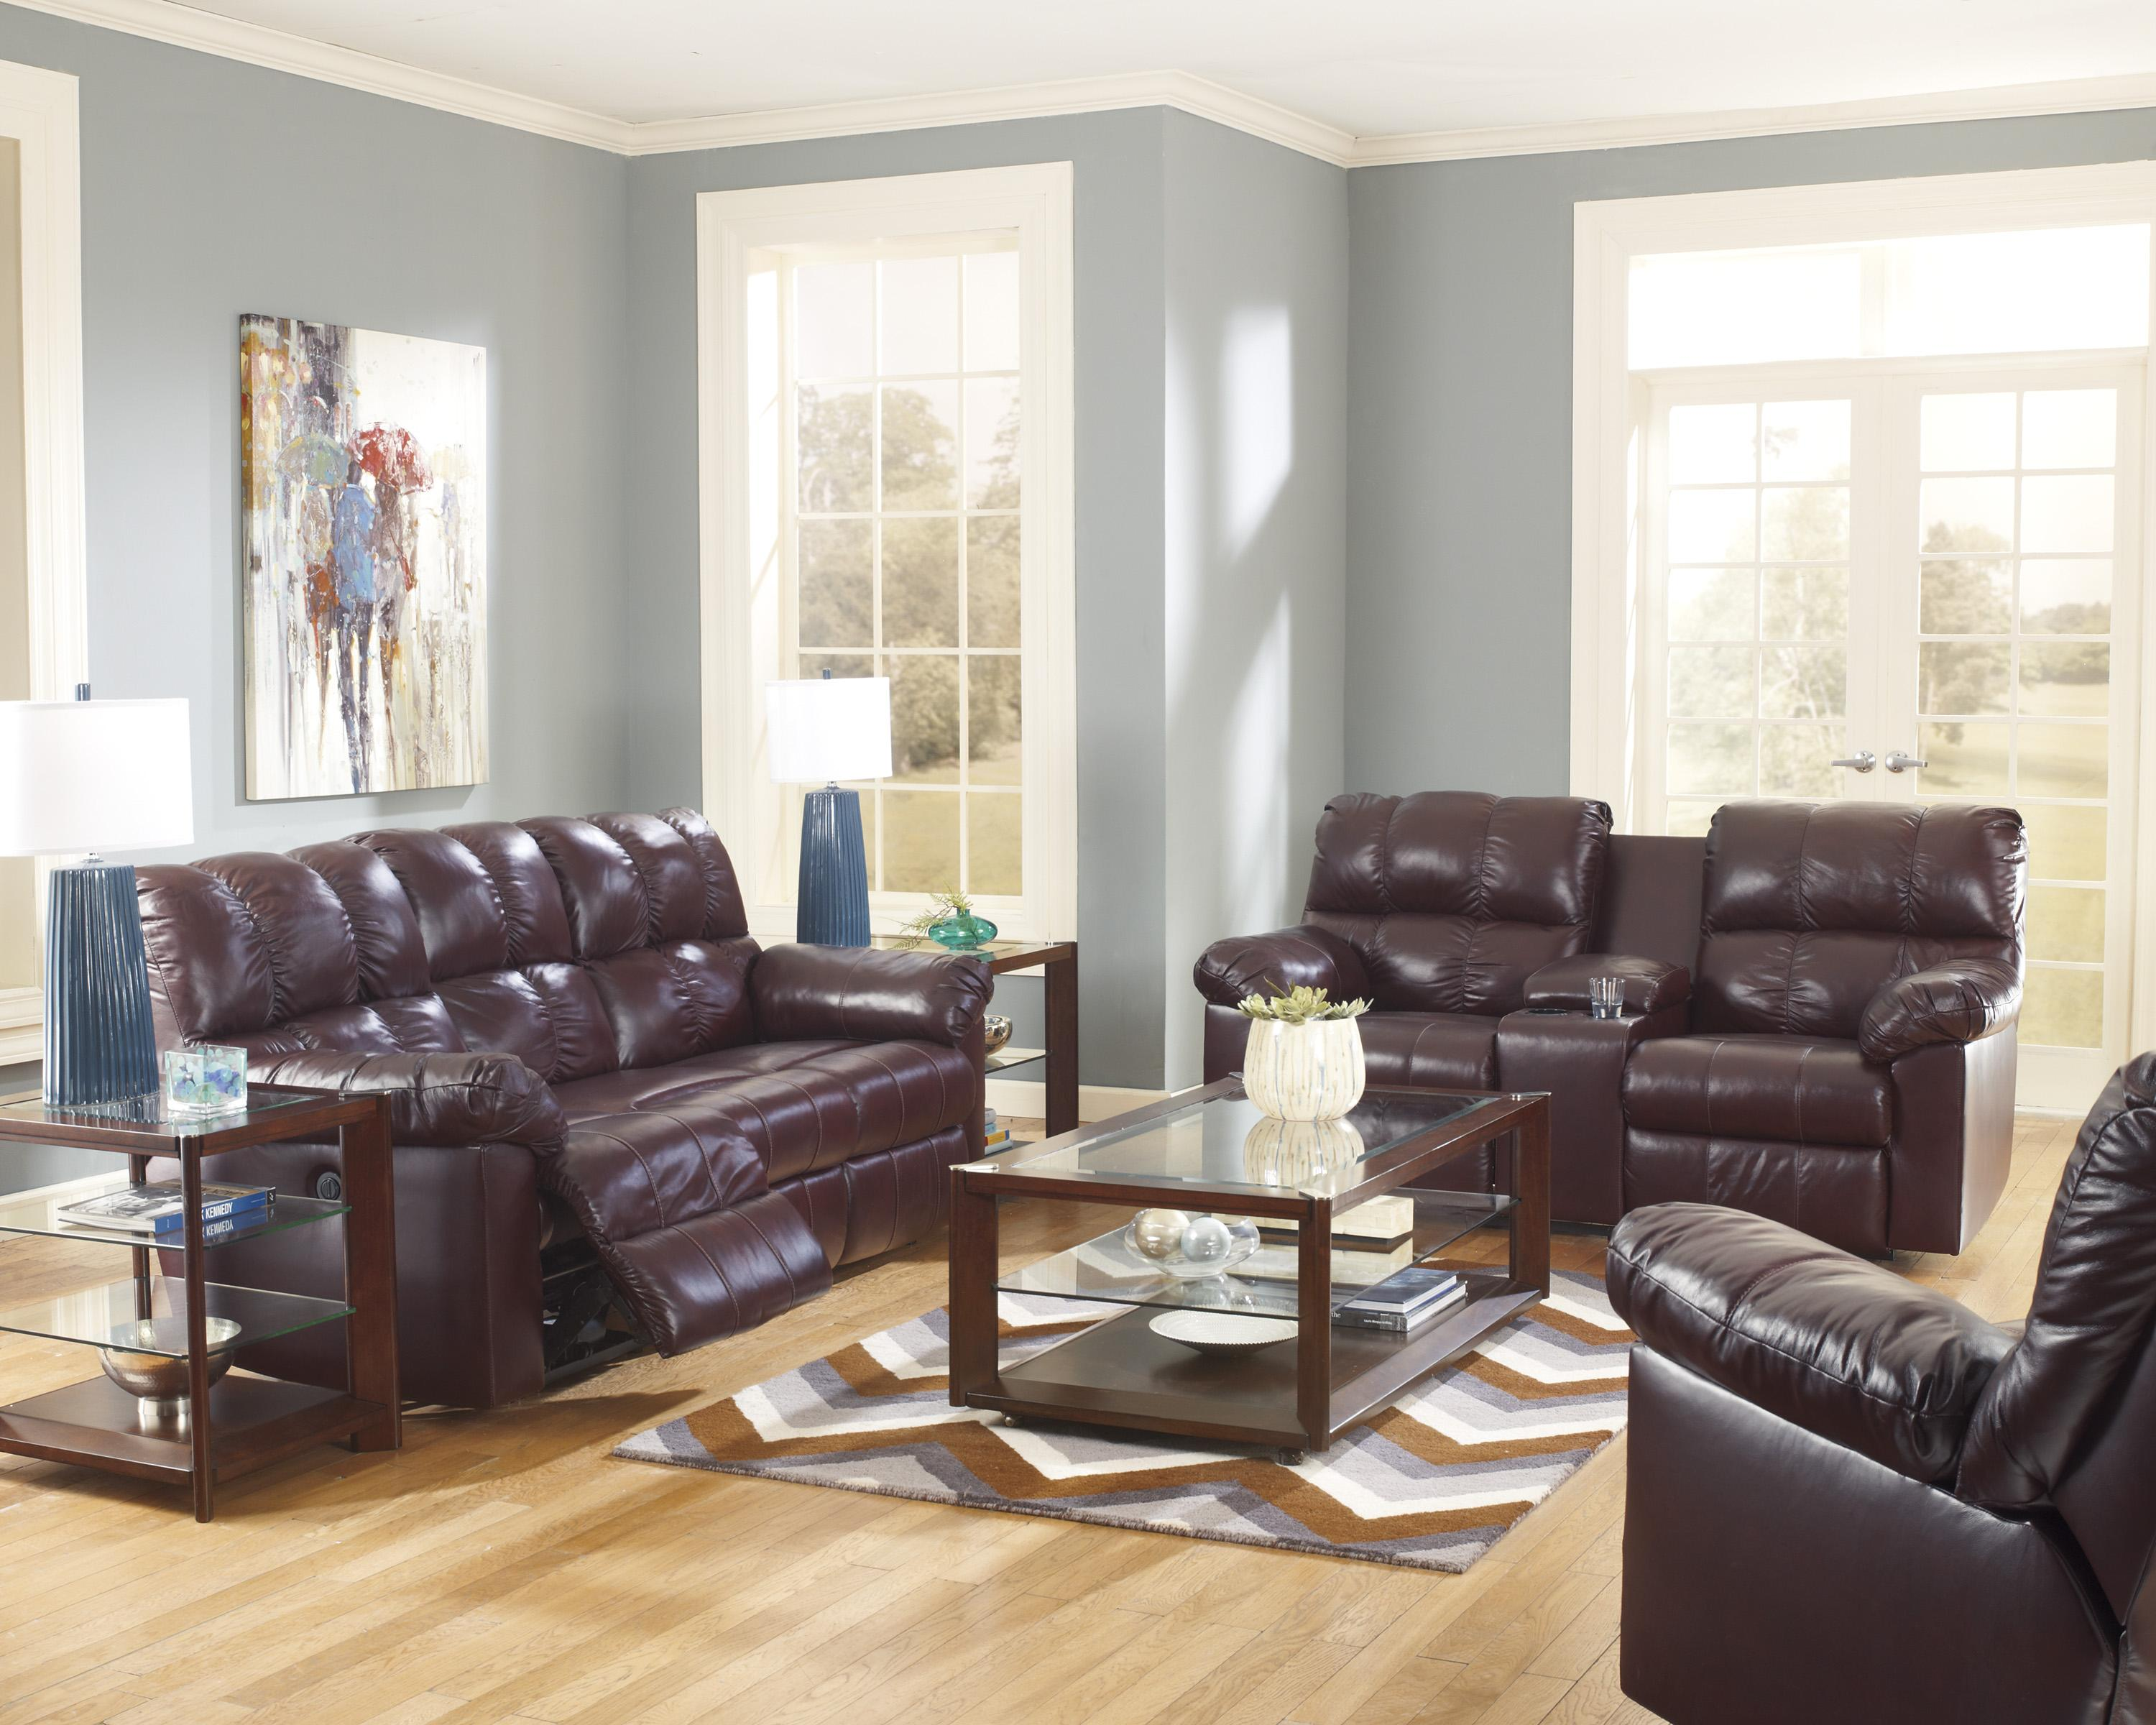 Signature Design by Ashley Kennard - Burgundy Reclining Living Room Group - Item Number: 29000 Living Room Group 6